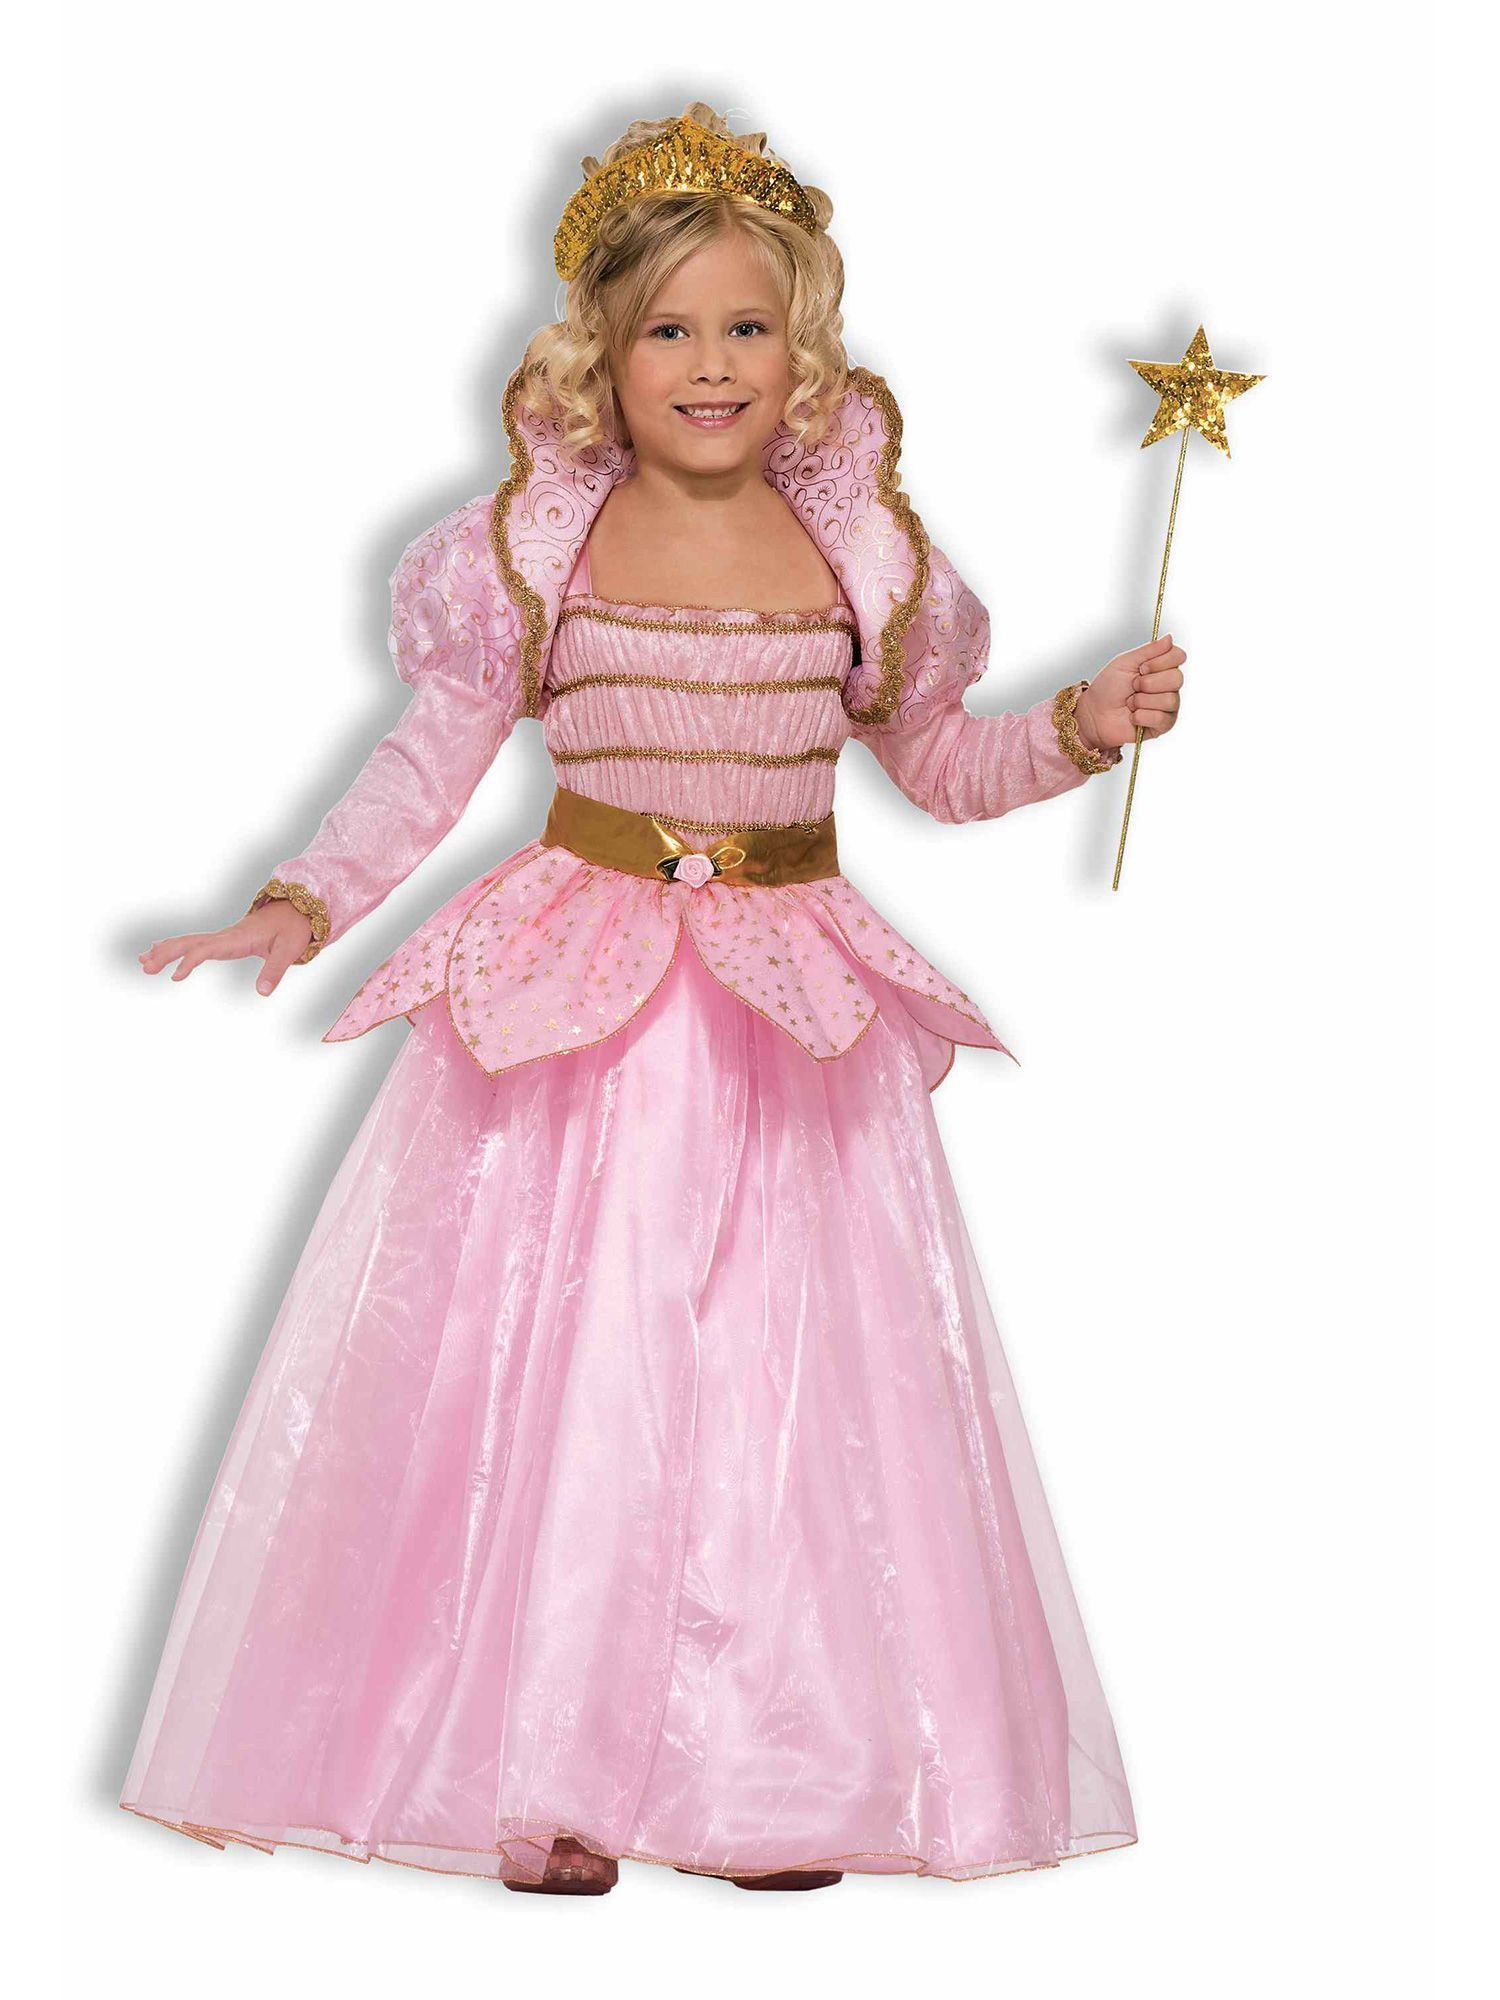 941bca5e39fe Toddler Princess Sparkle Costume - Baby/Toddler Costumes for 2018 ...